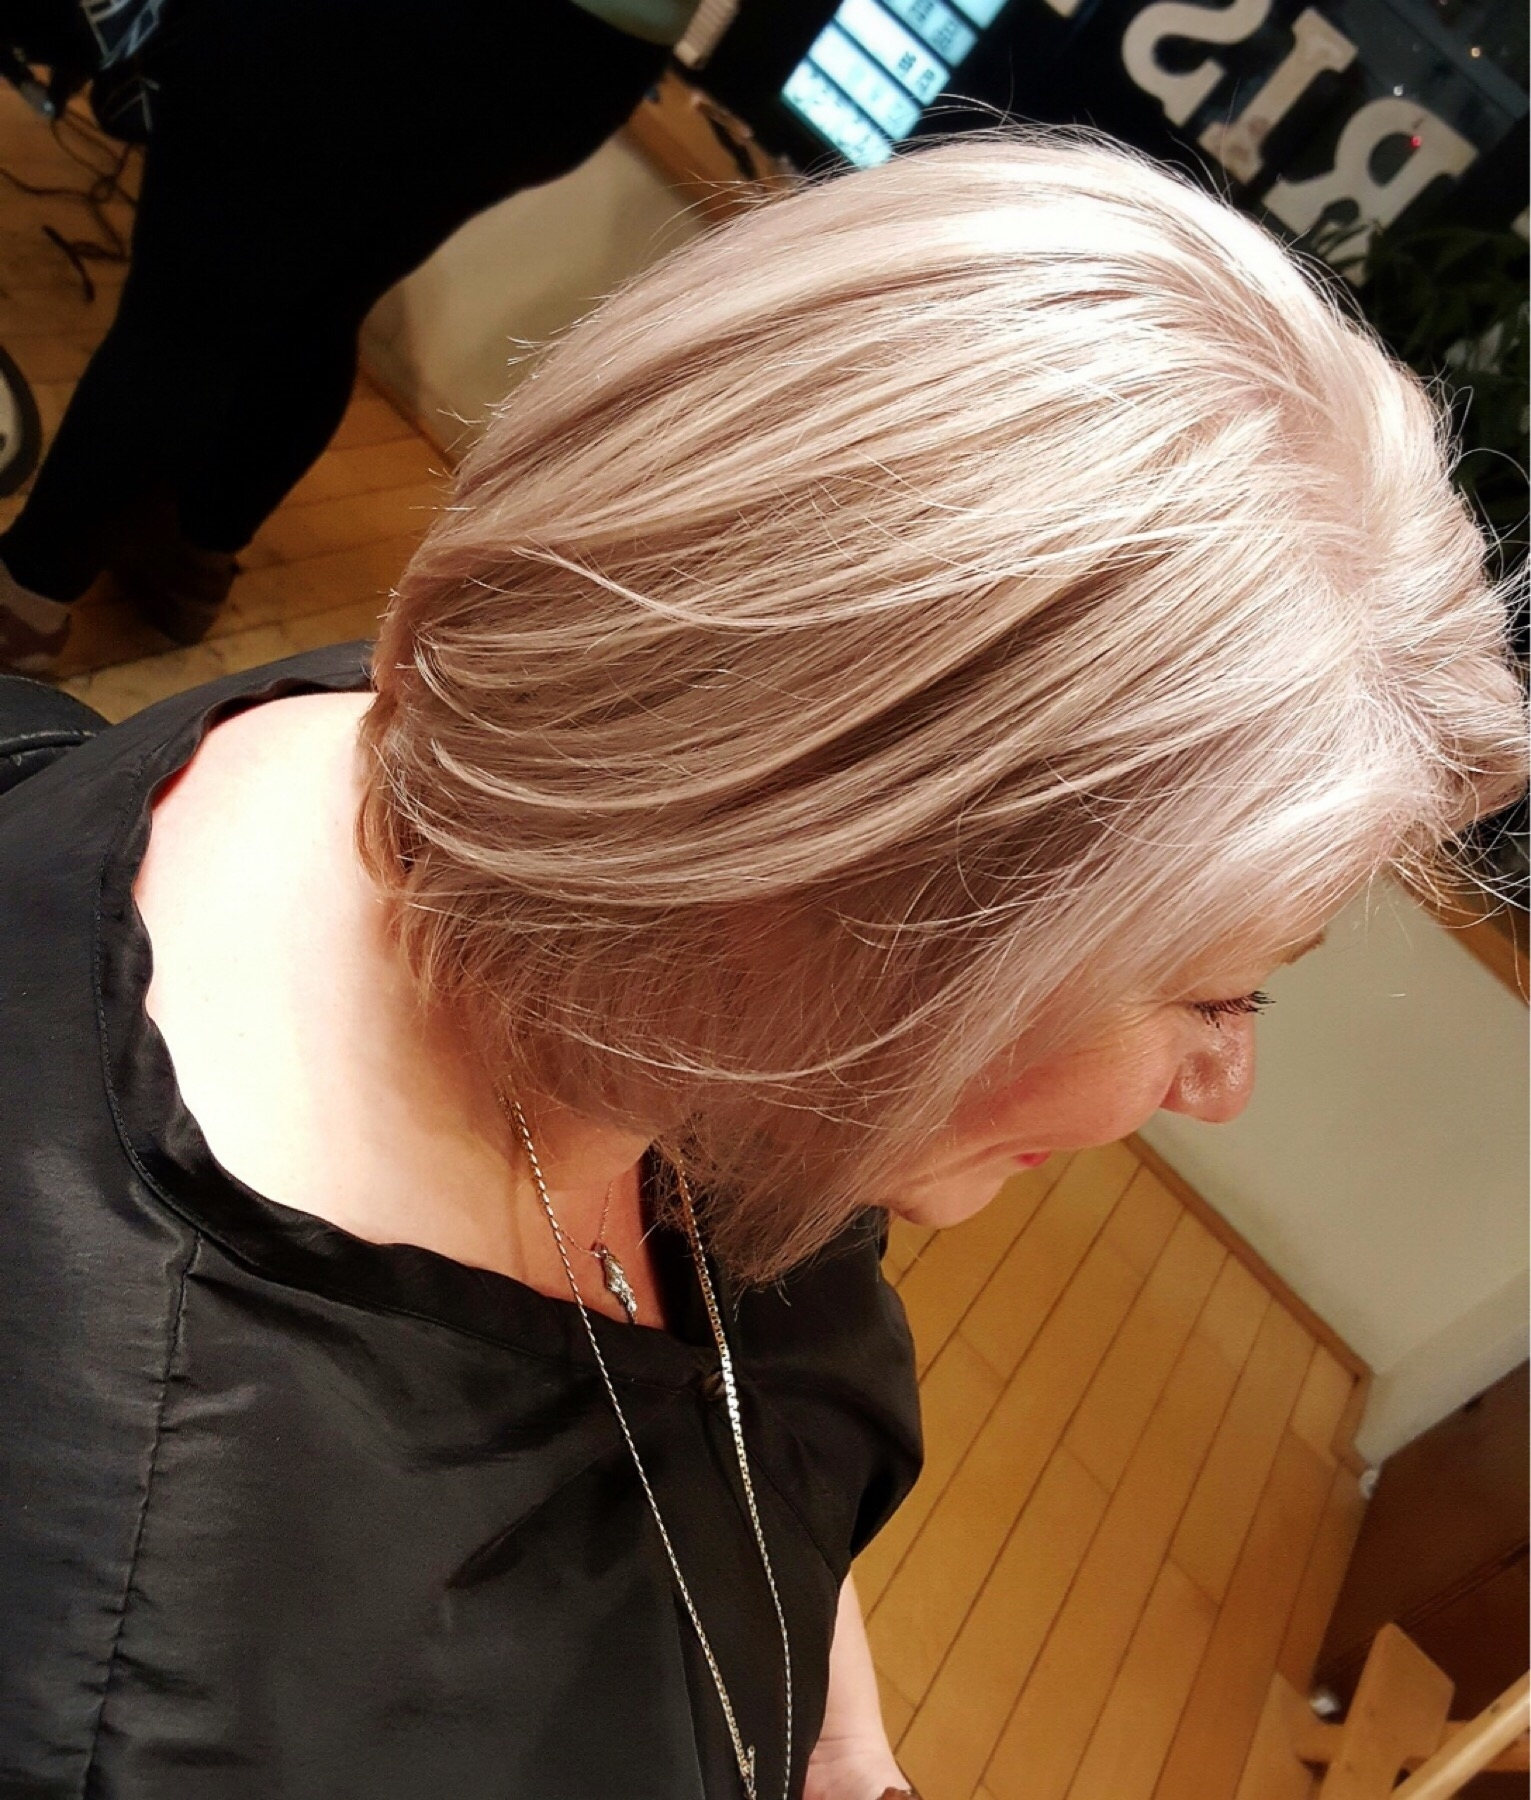 Christina Hair Design – ~ Your Beautiful Hair, In Need Of Our Care intended for Haircut Salon In Rockville Md